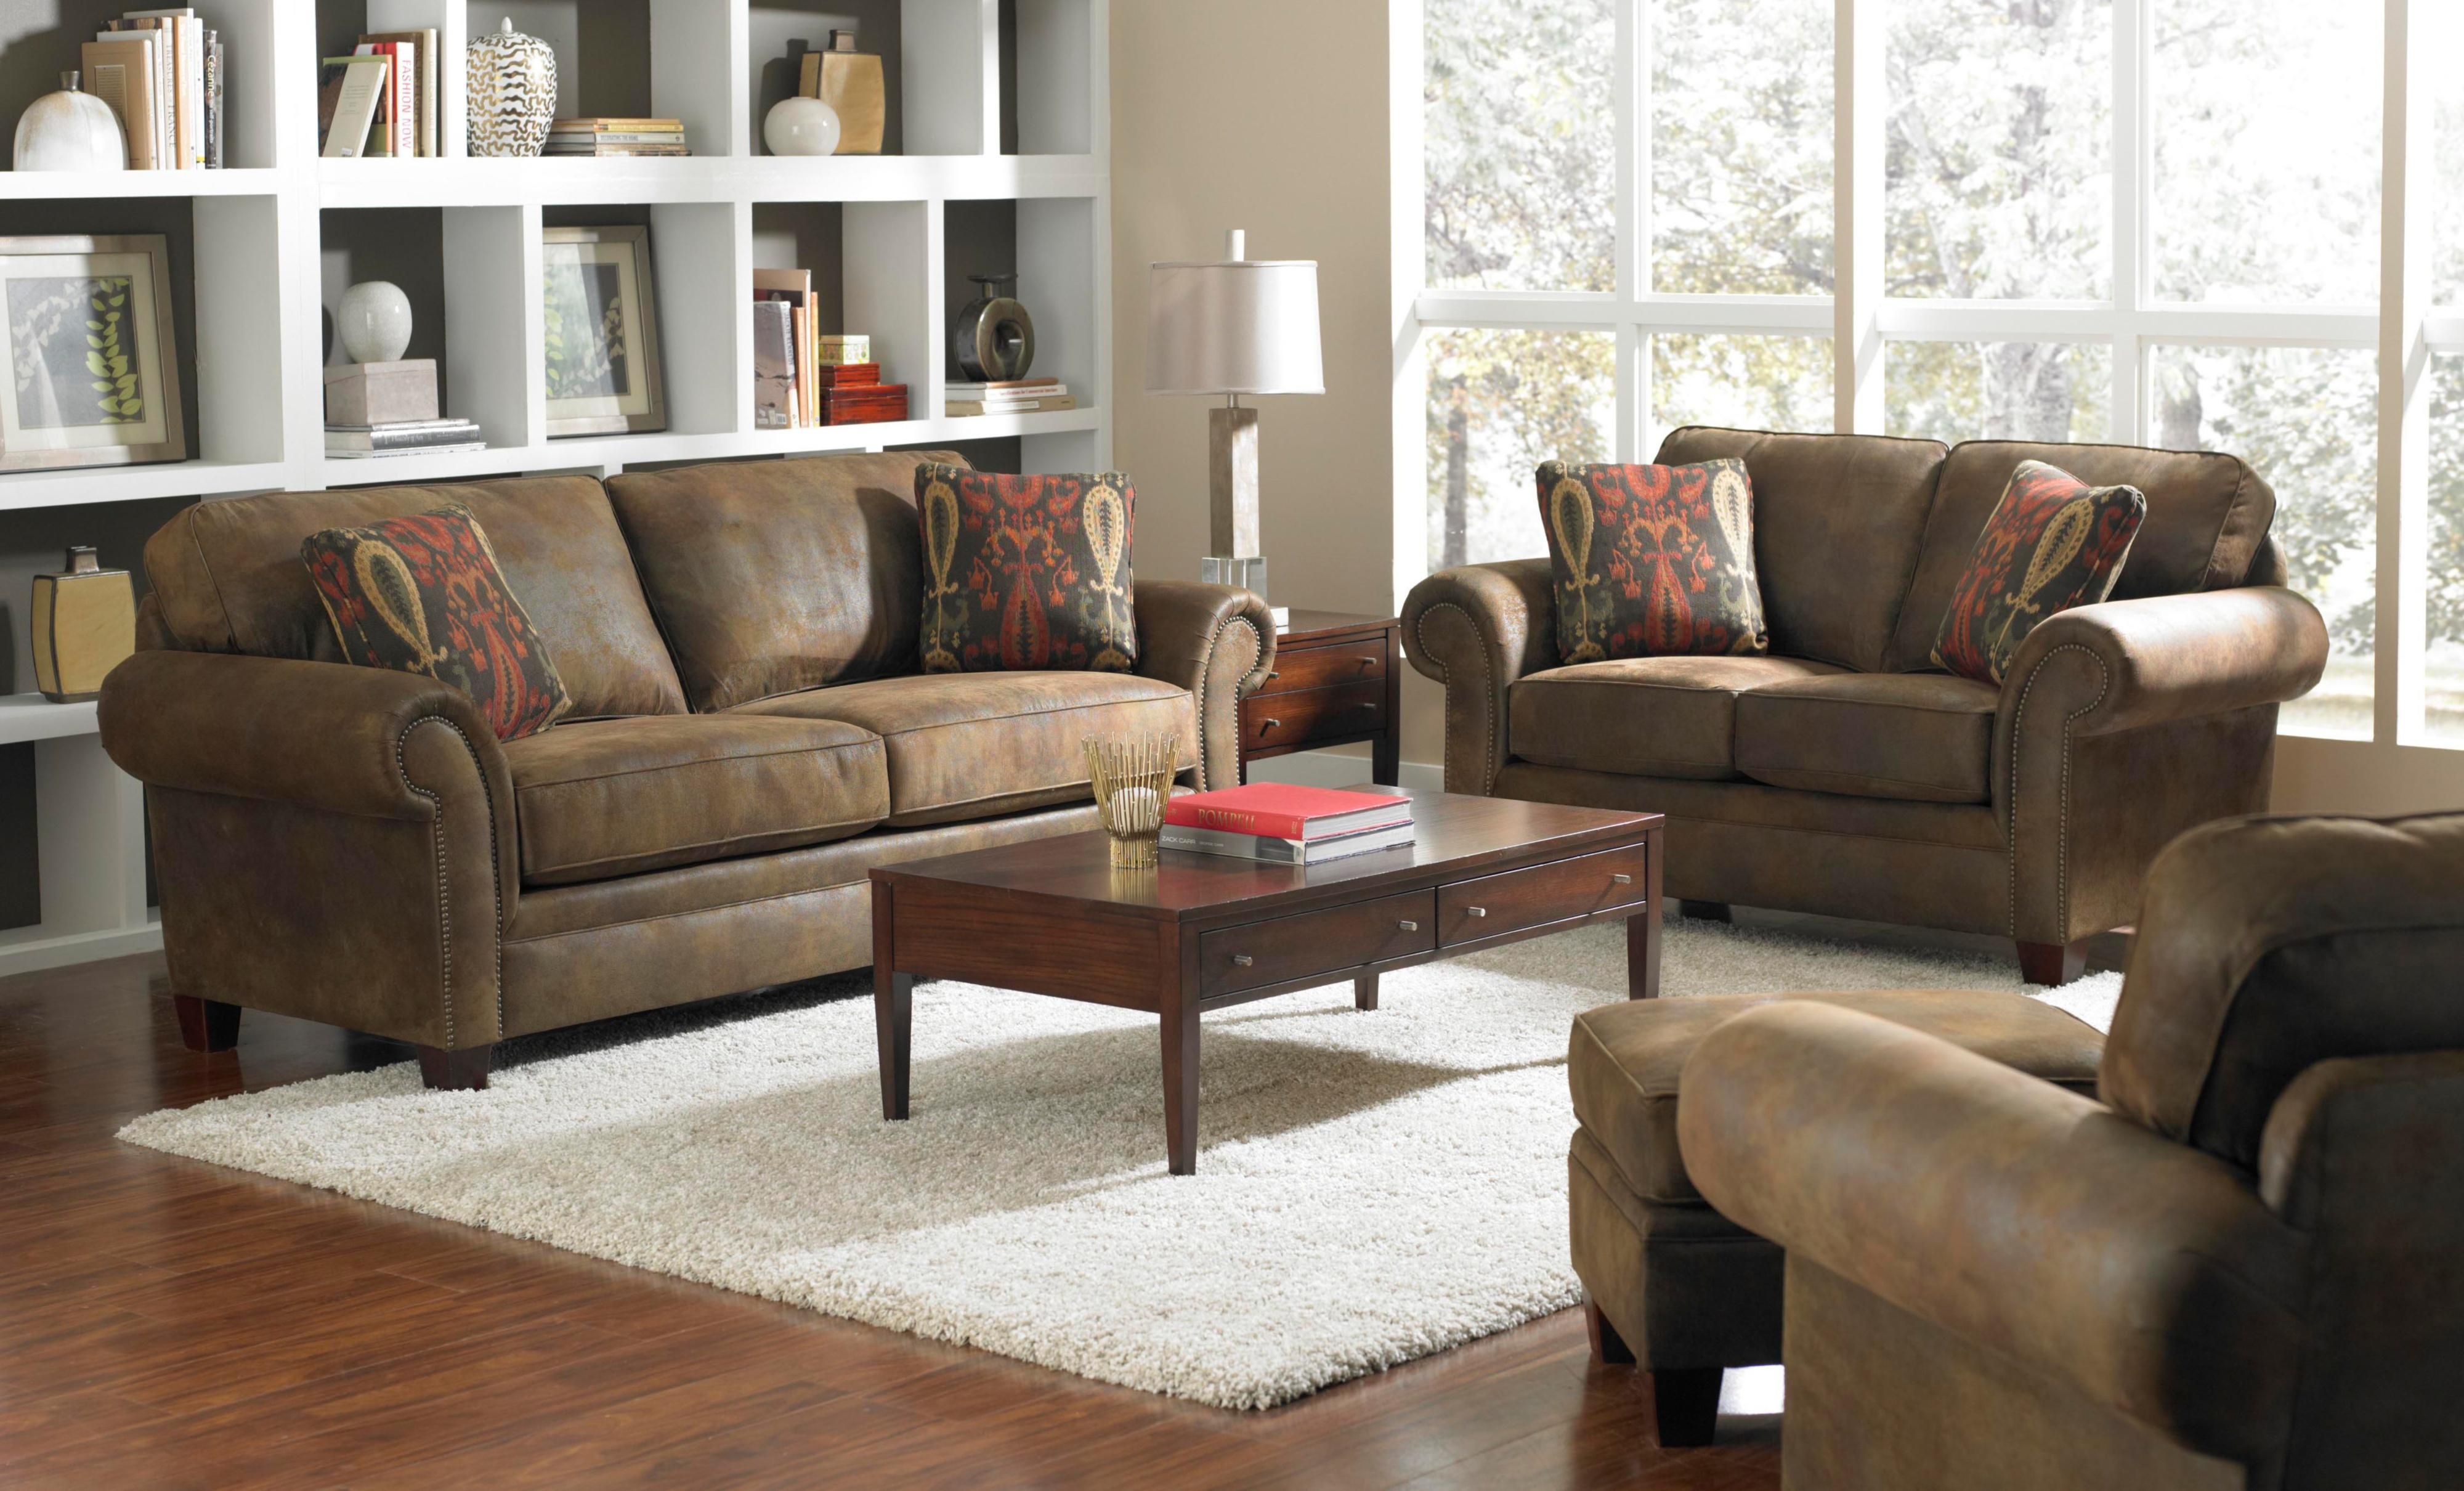 Broyhill Furniture Travis Stationary Living Room Group   Hudsonu0027s Furniture    Upholstery Group Tampa, St